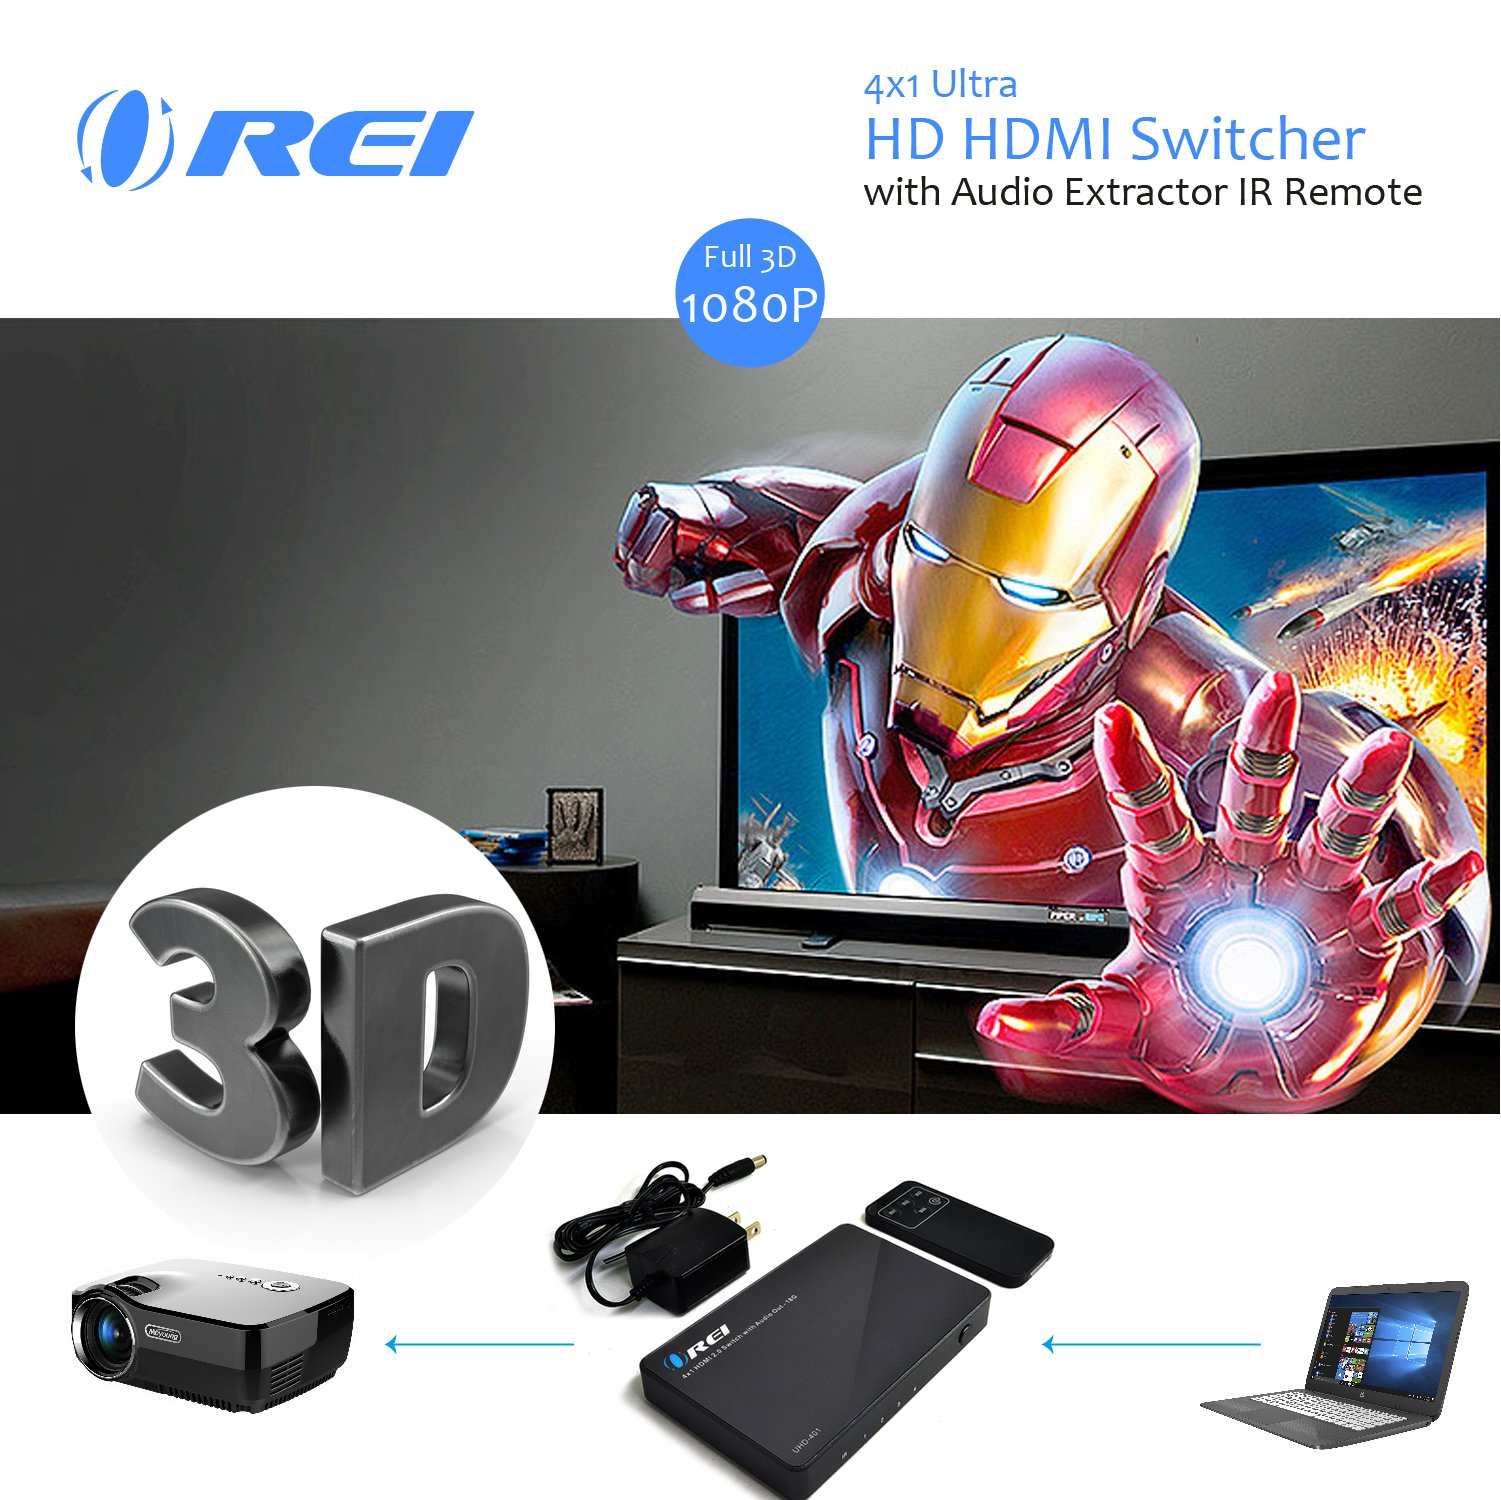 OREI 4 X 1 Ultra HD HDMI Switcher With Audio Extractor IR Remote - Supports Upto 4K @ 60Hz - (4 Input, 1 Output) Switch, Hub, Port for Cable, HD TV, Laptop, MacBook & More by OREI (Image #4)